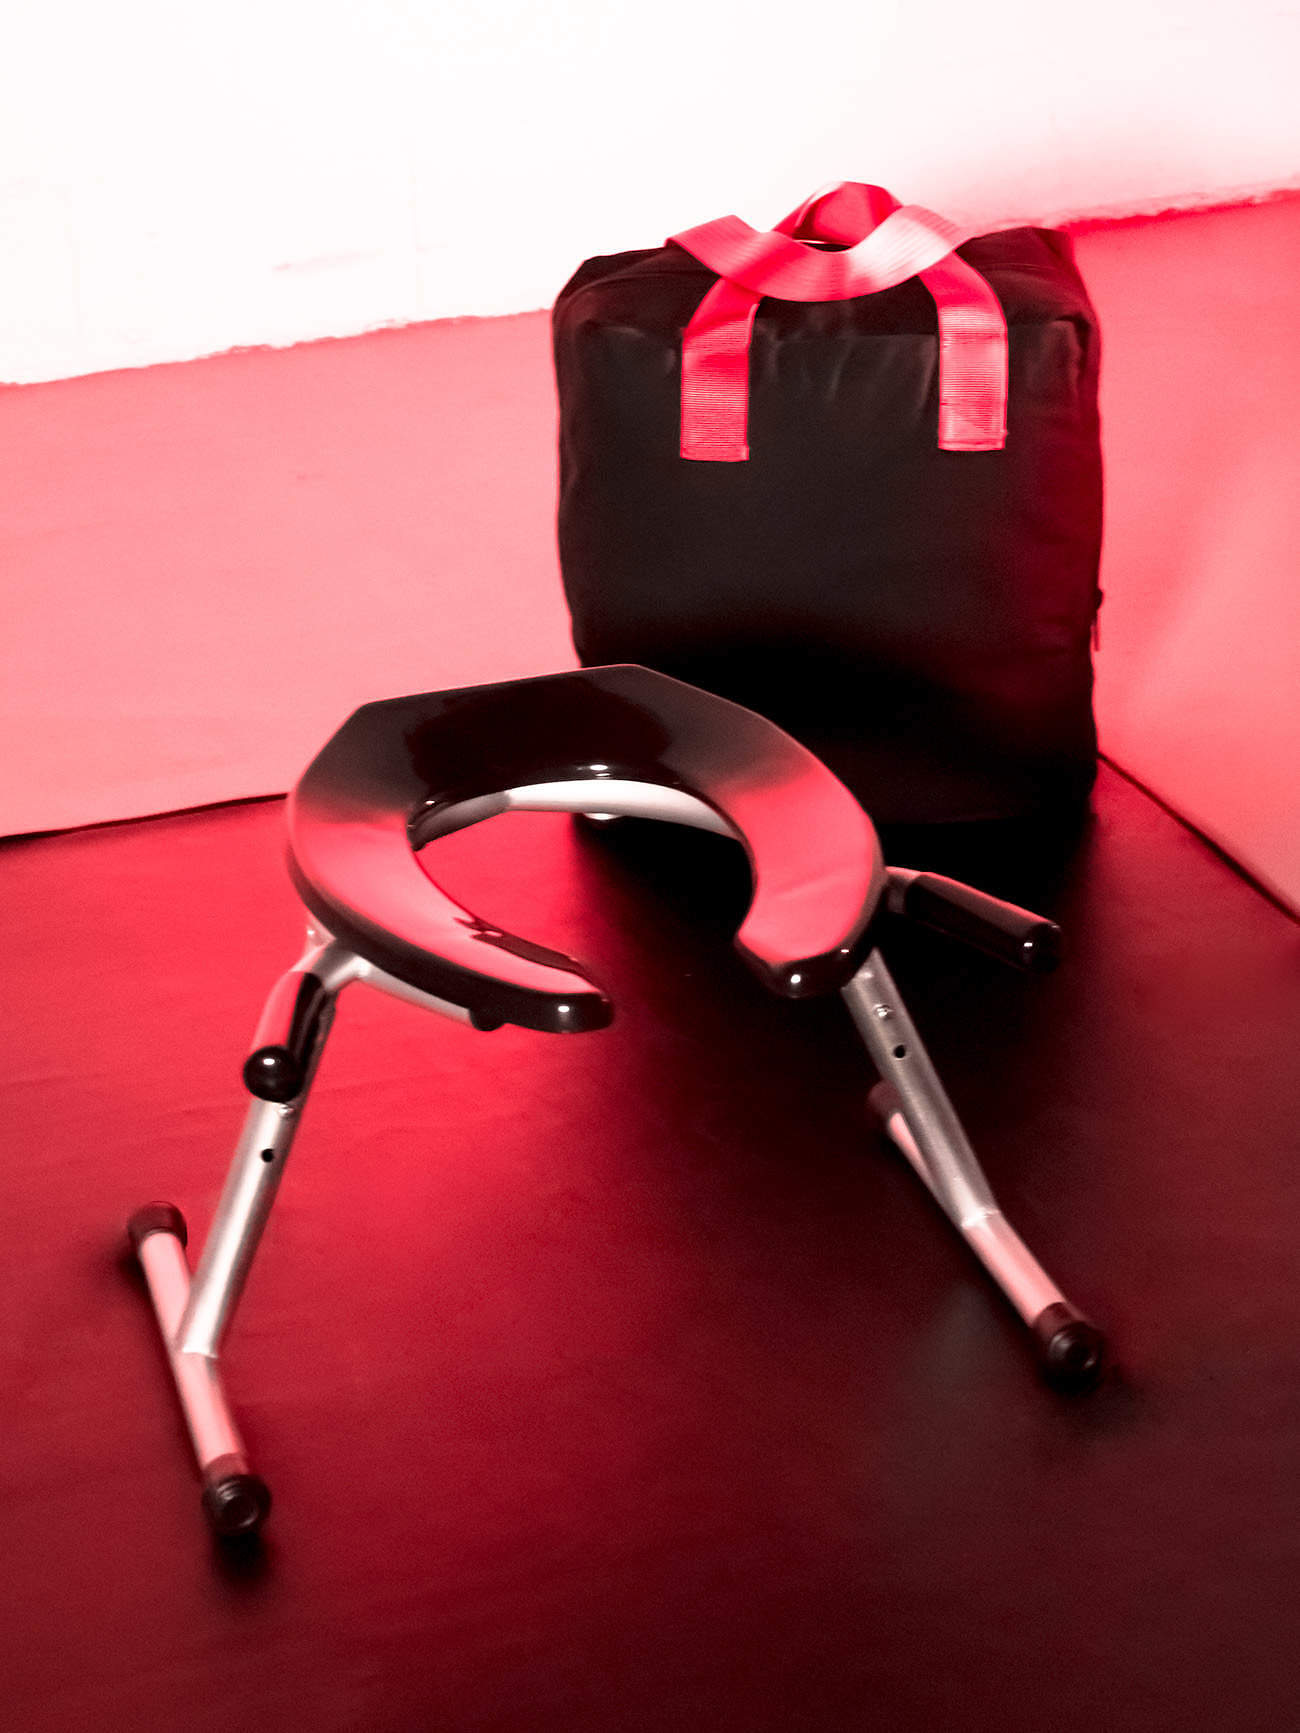 JimSupport Handled T-Leg Rim Seat, With Bag